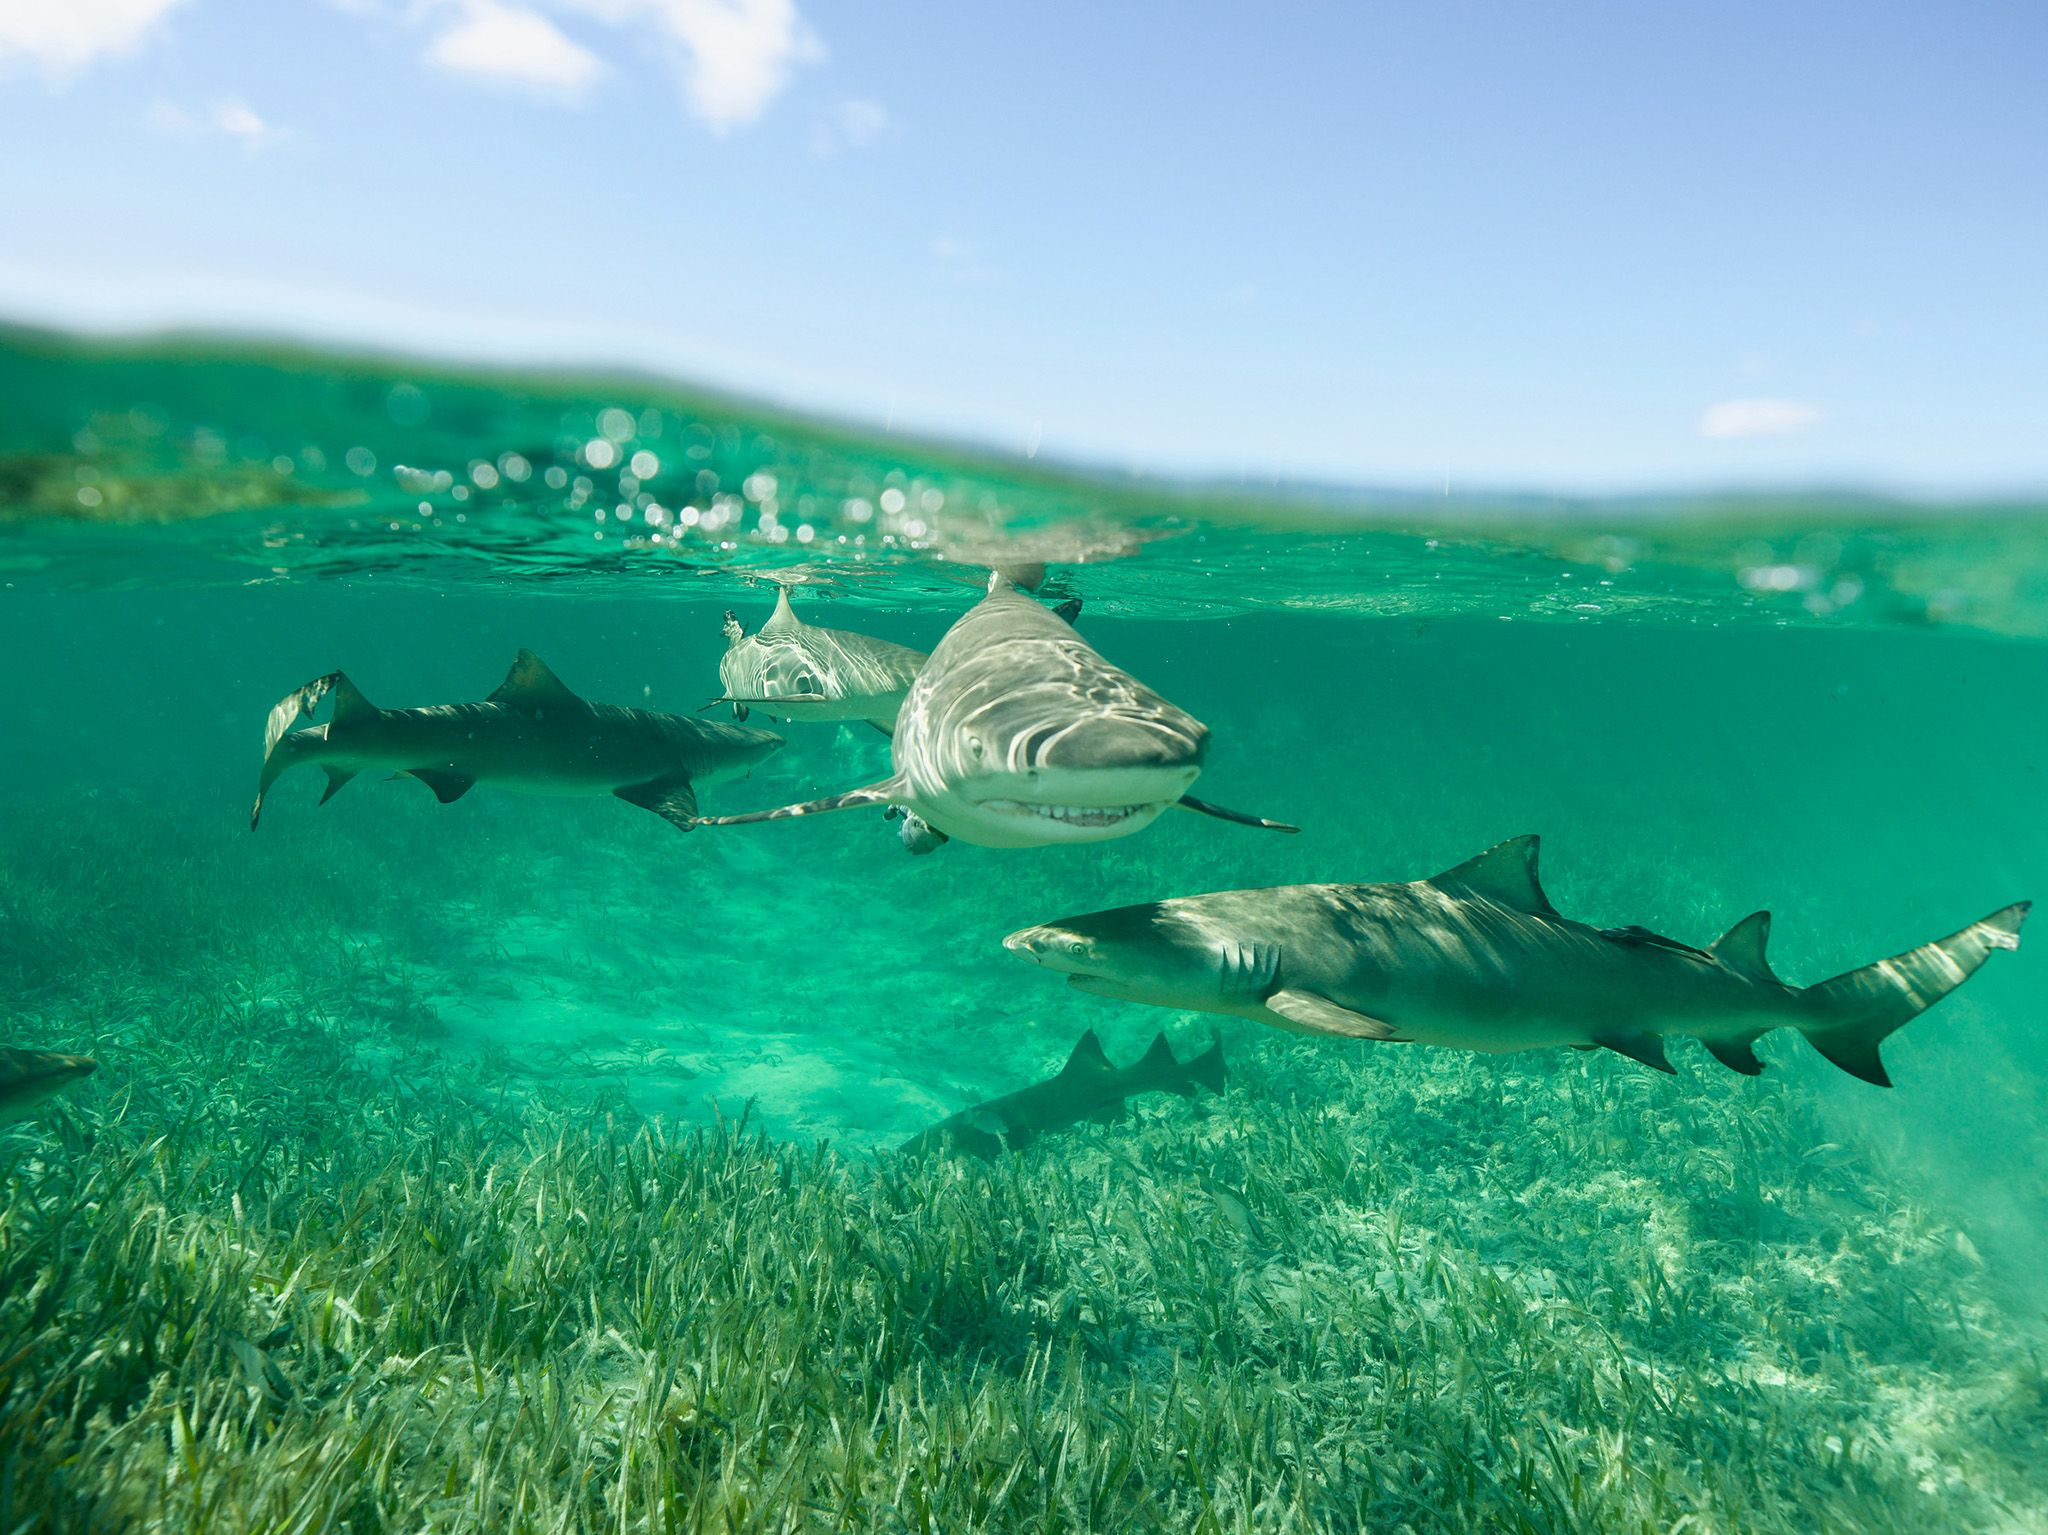 A gang of lemon sharks swims in a lagoon in Bimini, The Bahamas. This is part of Shark Gangs. [Photo of the day - July 2021]